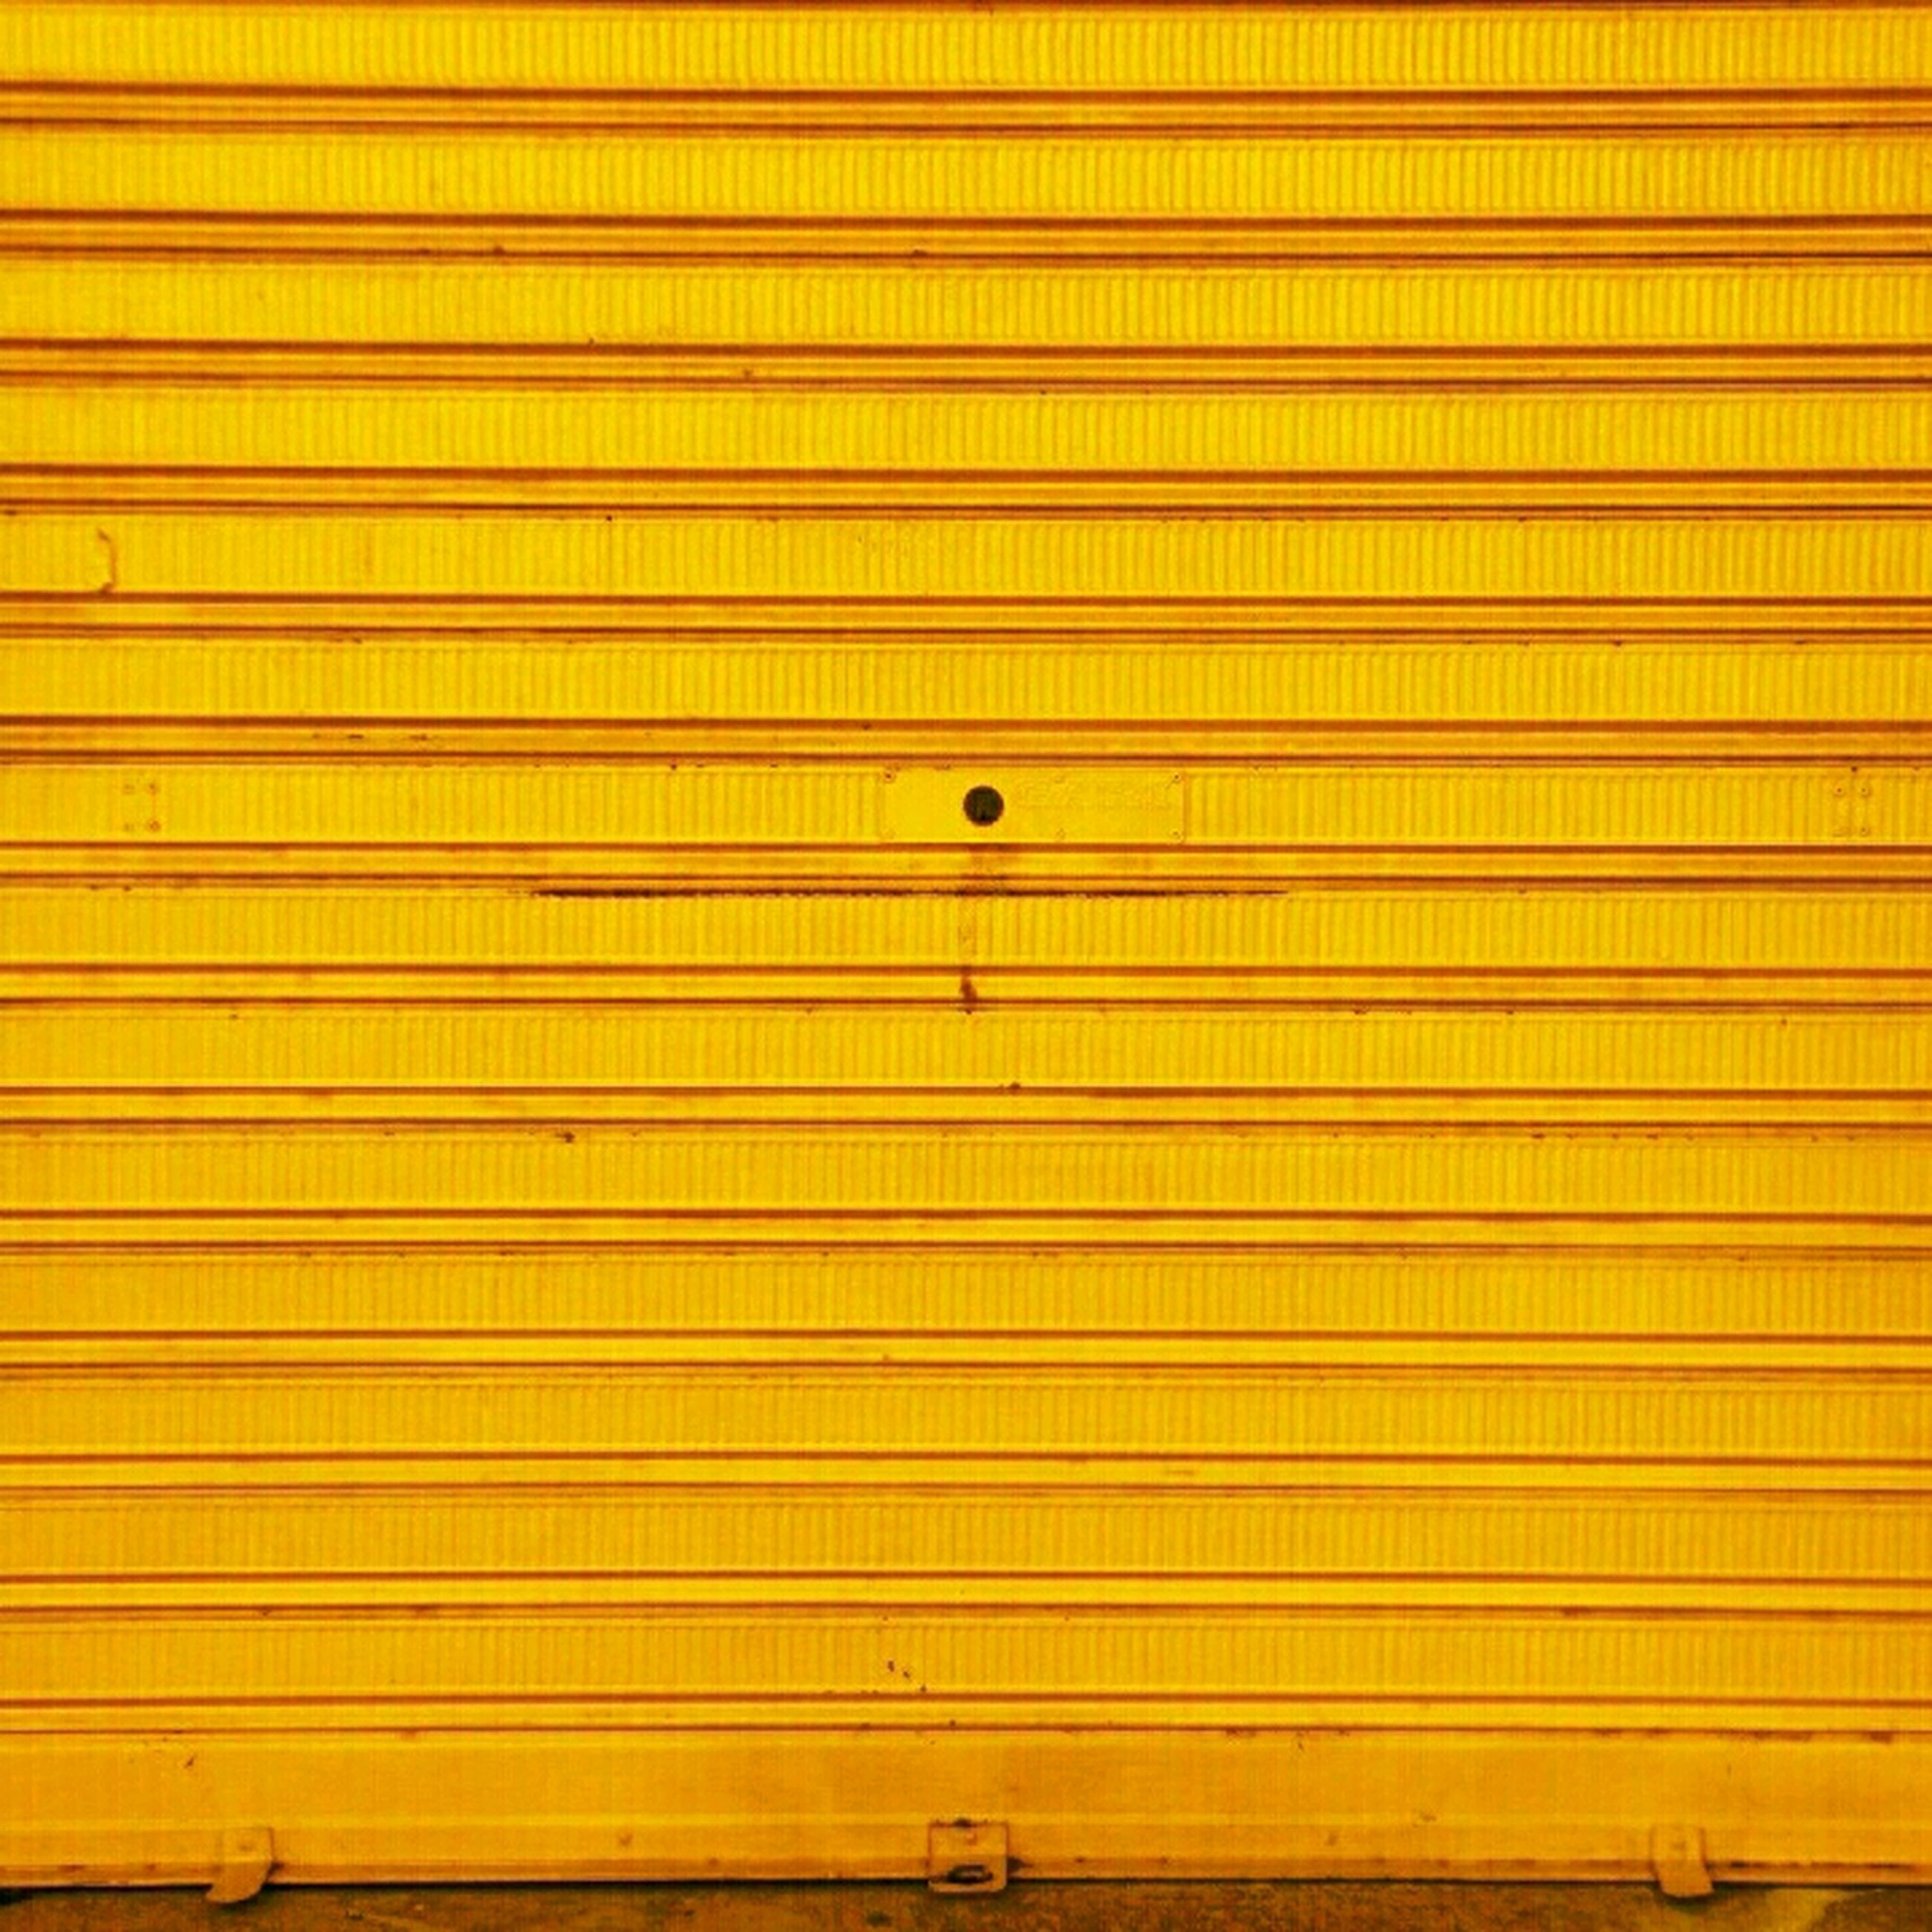 full frame, backgrounds, yellow, pattern, textured, built structure, architecture, repetition, wall - building feature, design, close-up, wall, metal, closed, protection, no people, building exterior, detail, metallic, safety